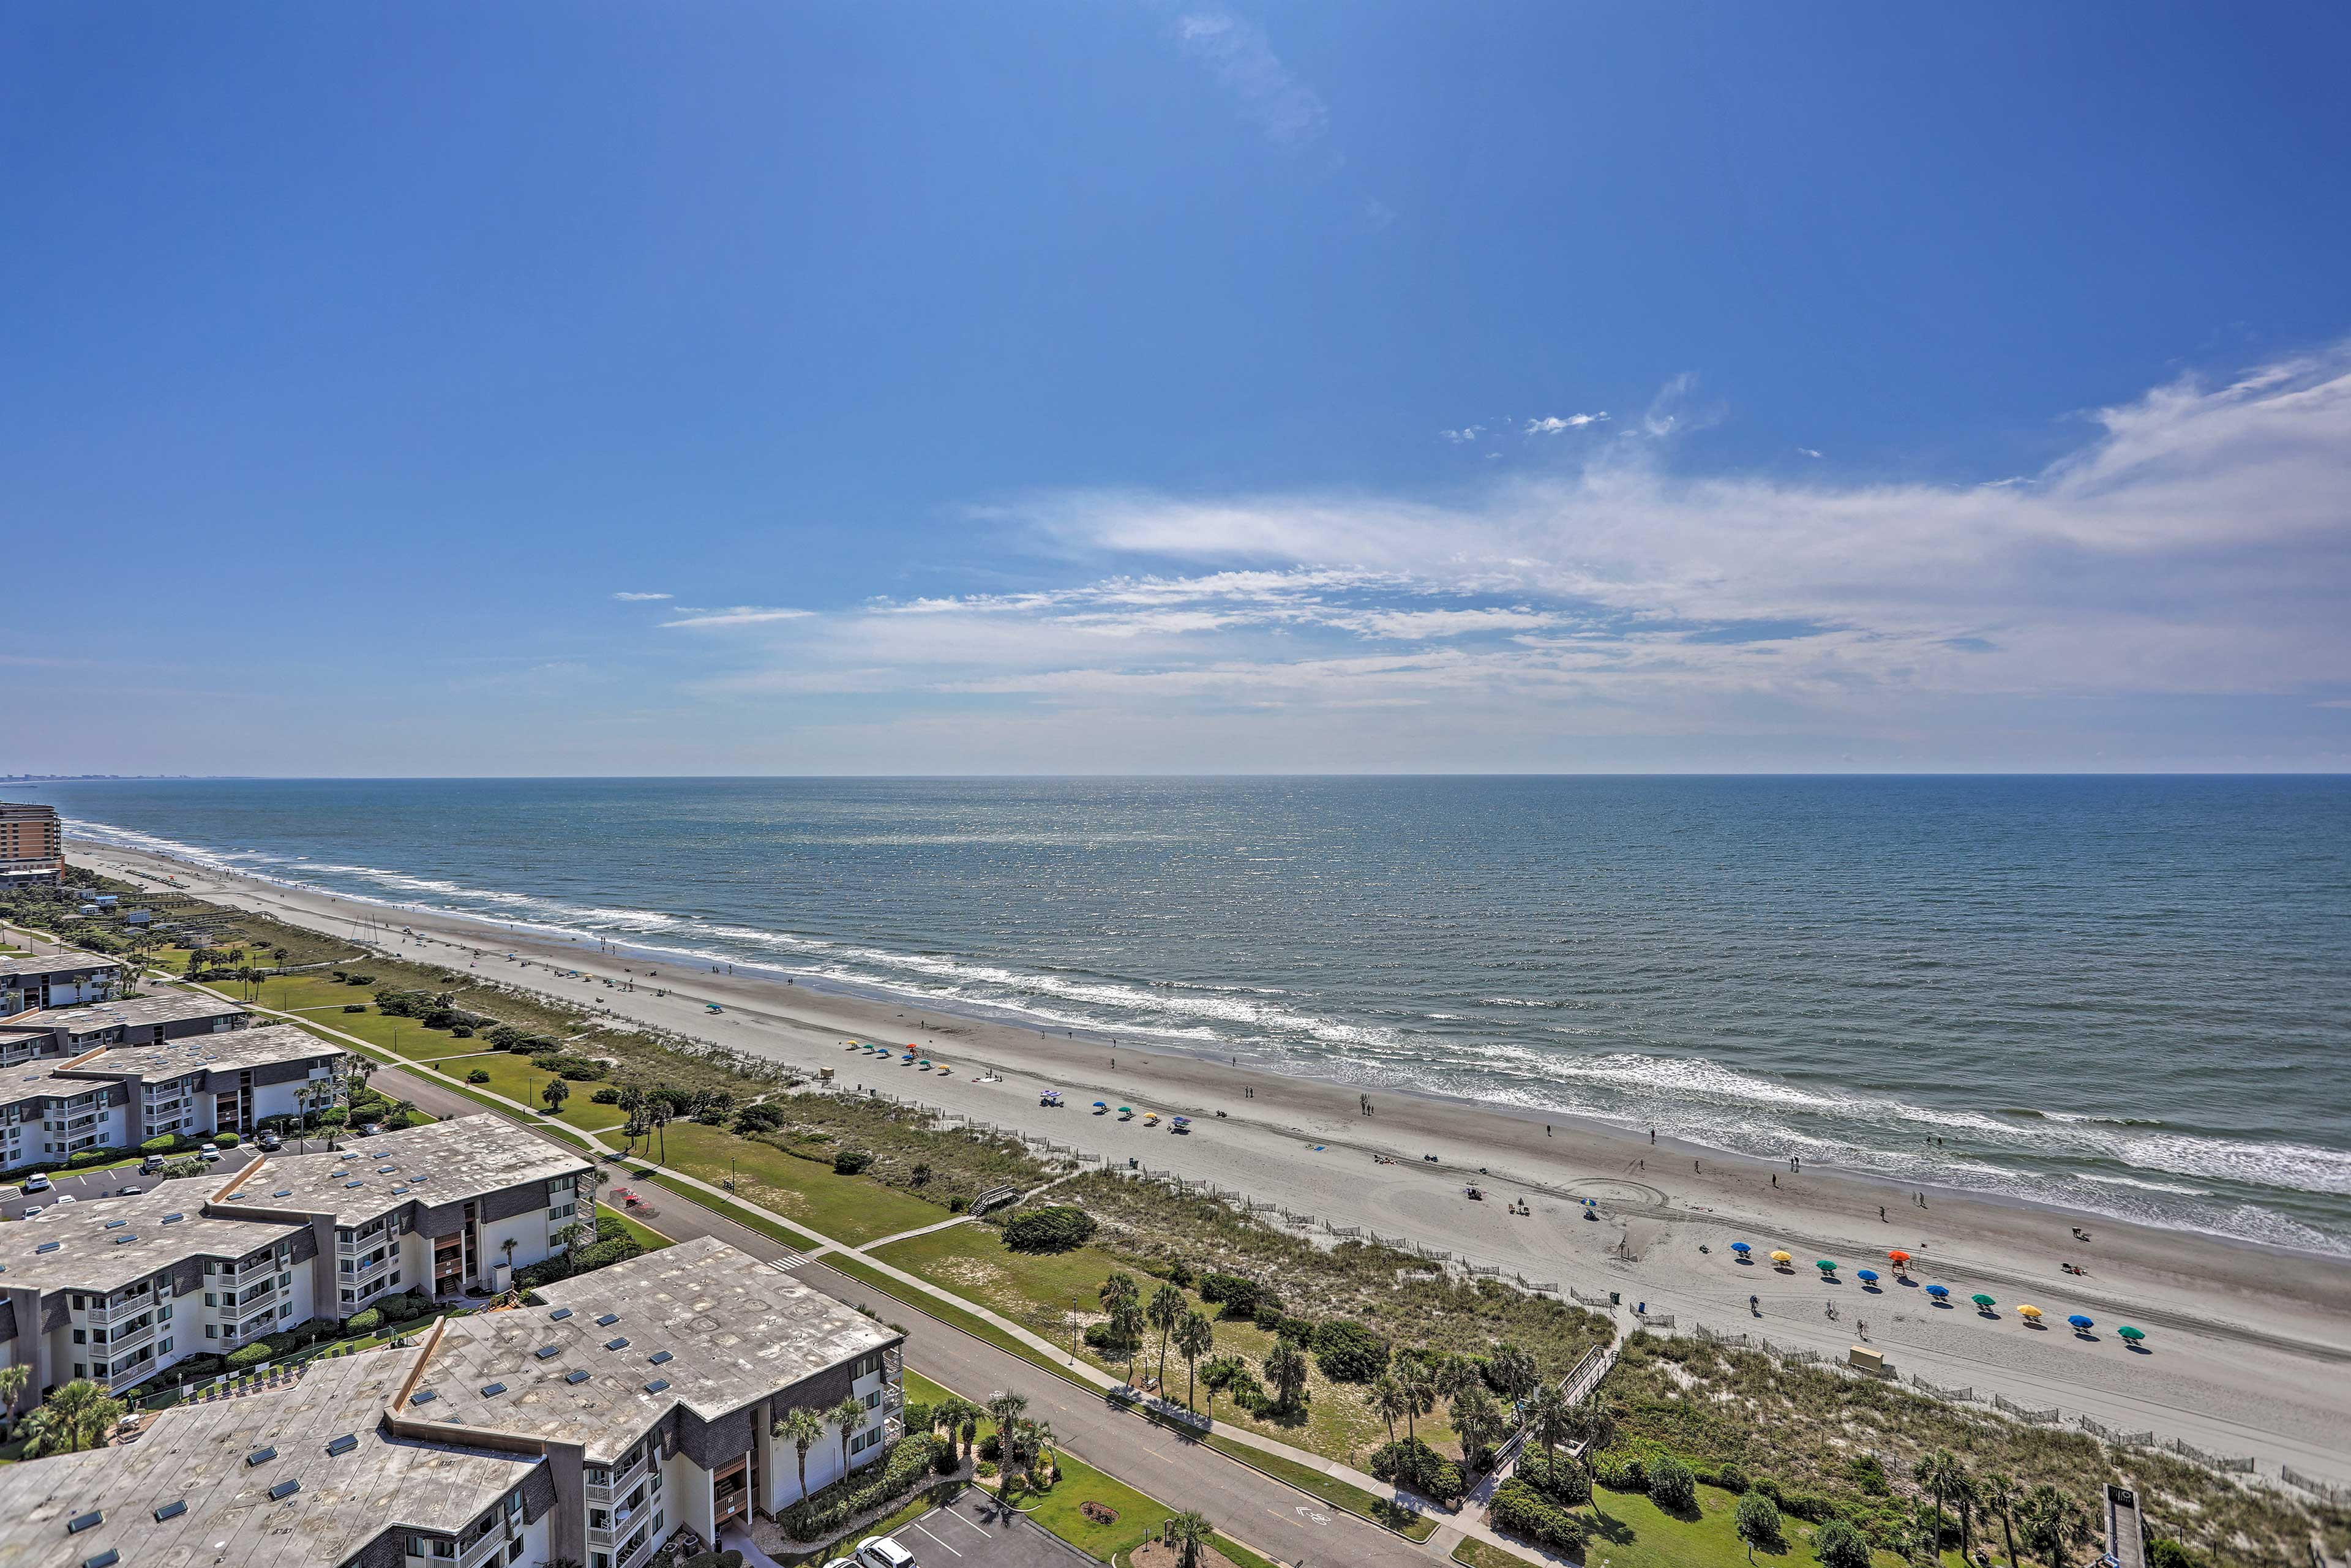 Take a stroll along the sands of Myrtle Beach.